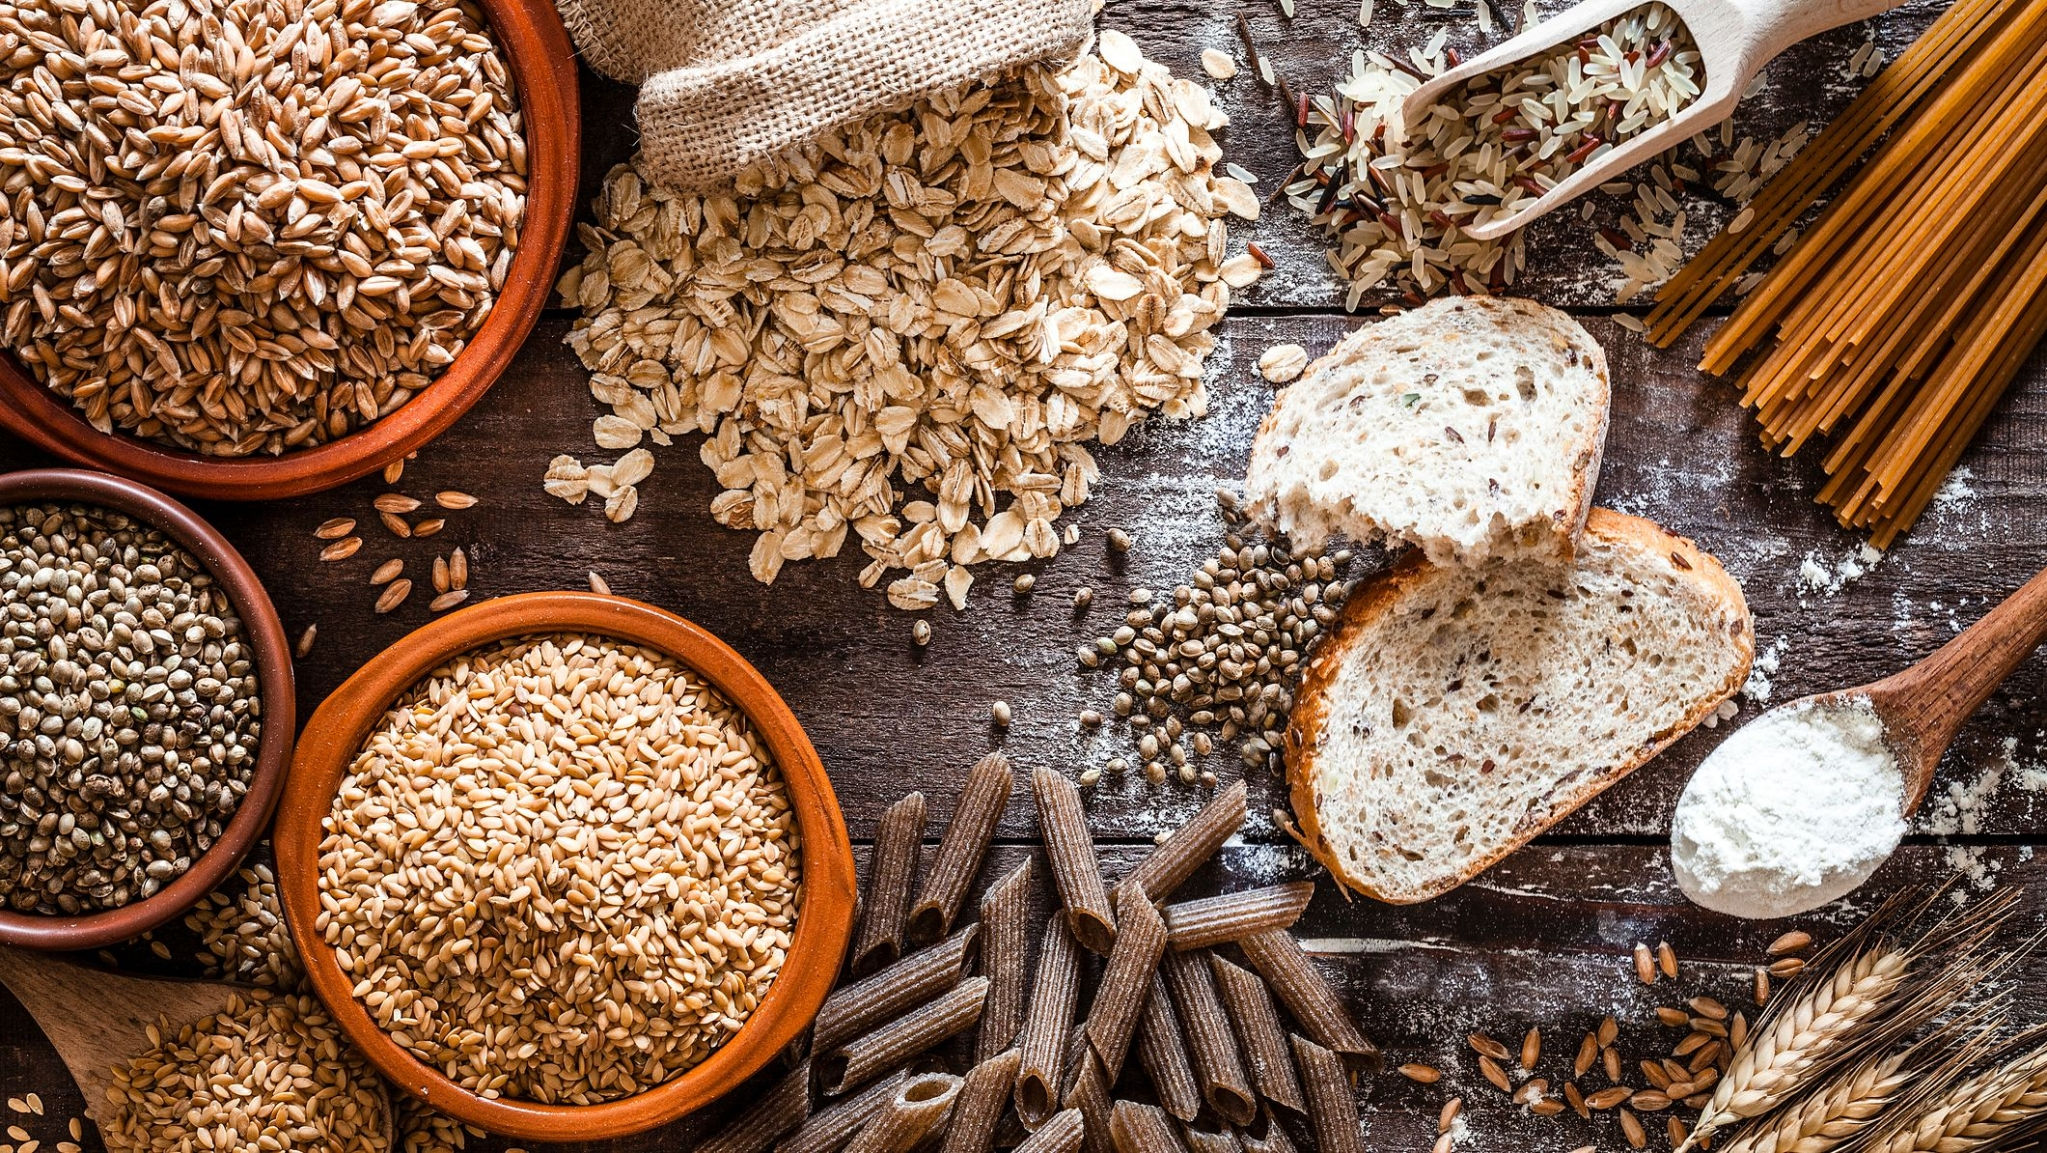 Bran Extract Could Preserve Healthy Food with Natural Ingredients